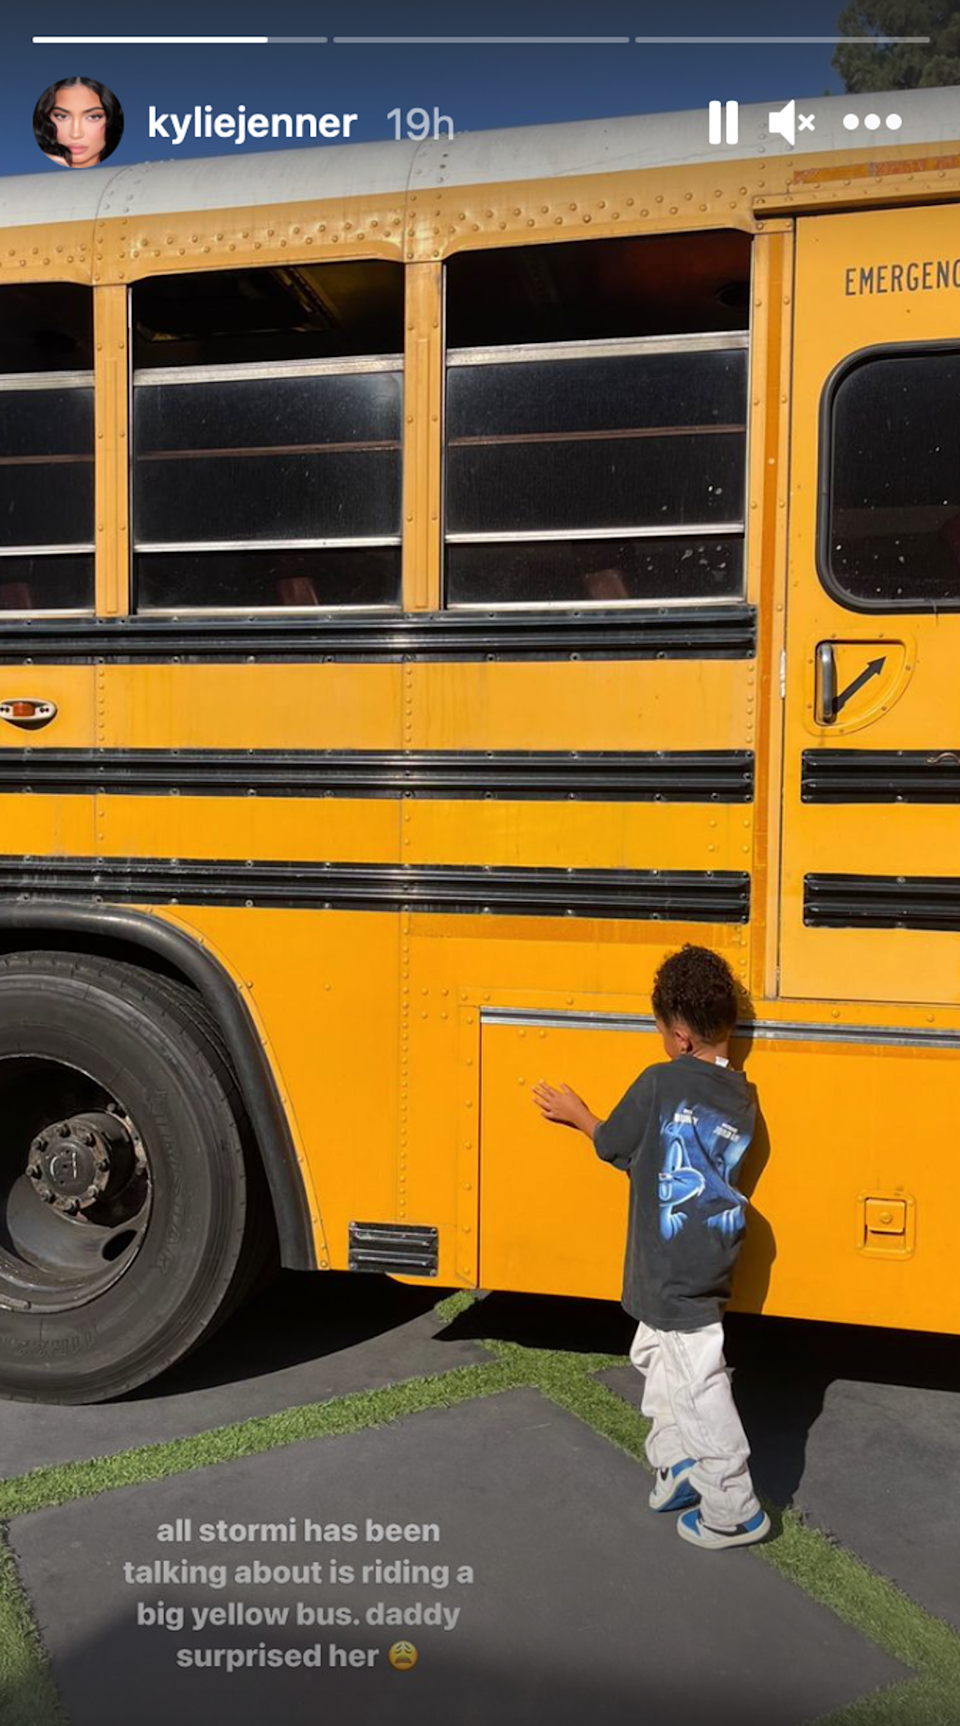 Kylie Jenner shows off yellow school bus Travis Scott purchased for daughter Stormi (Instagram)